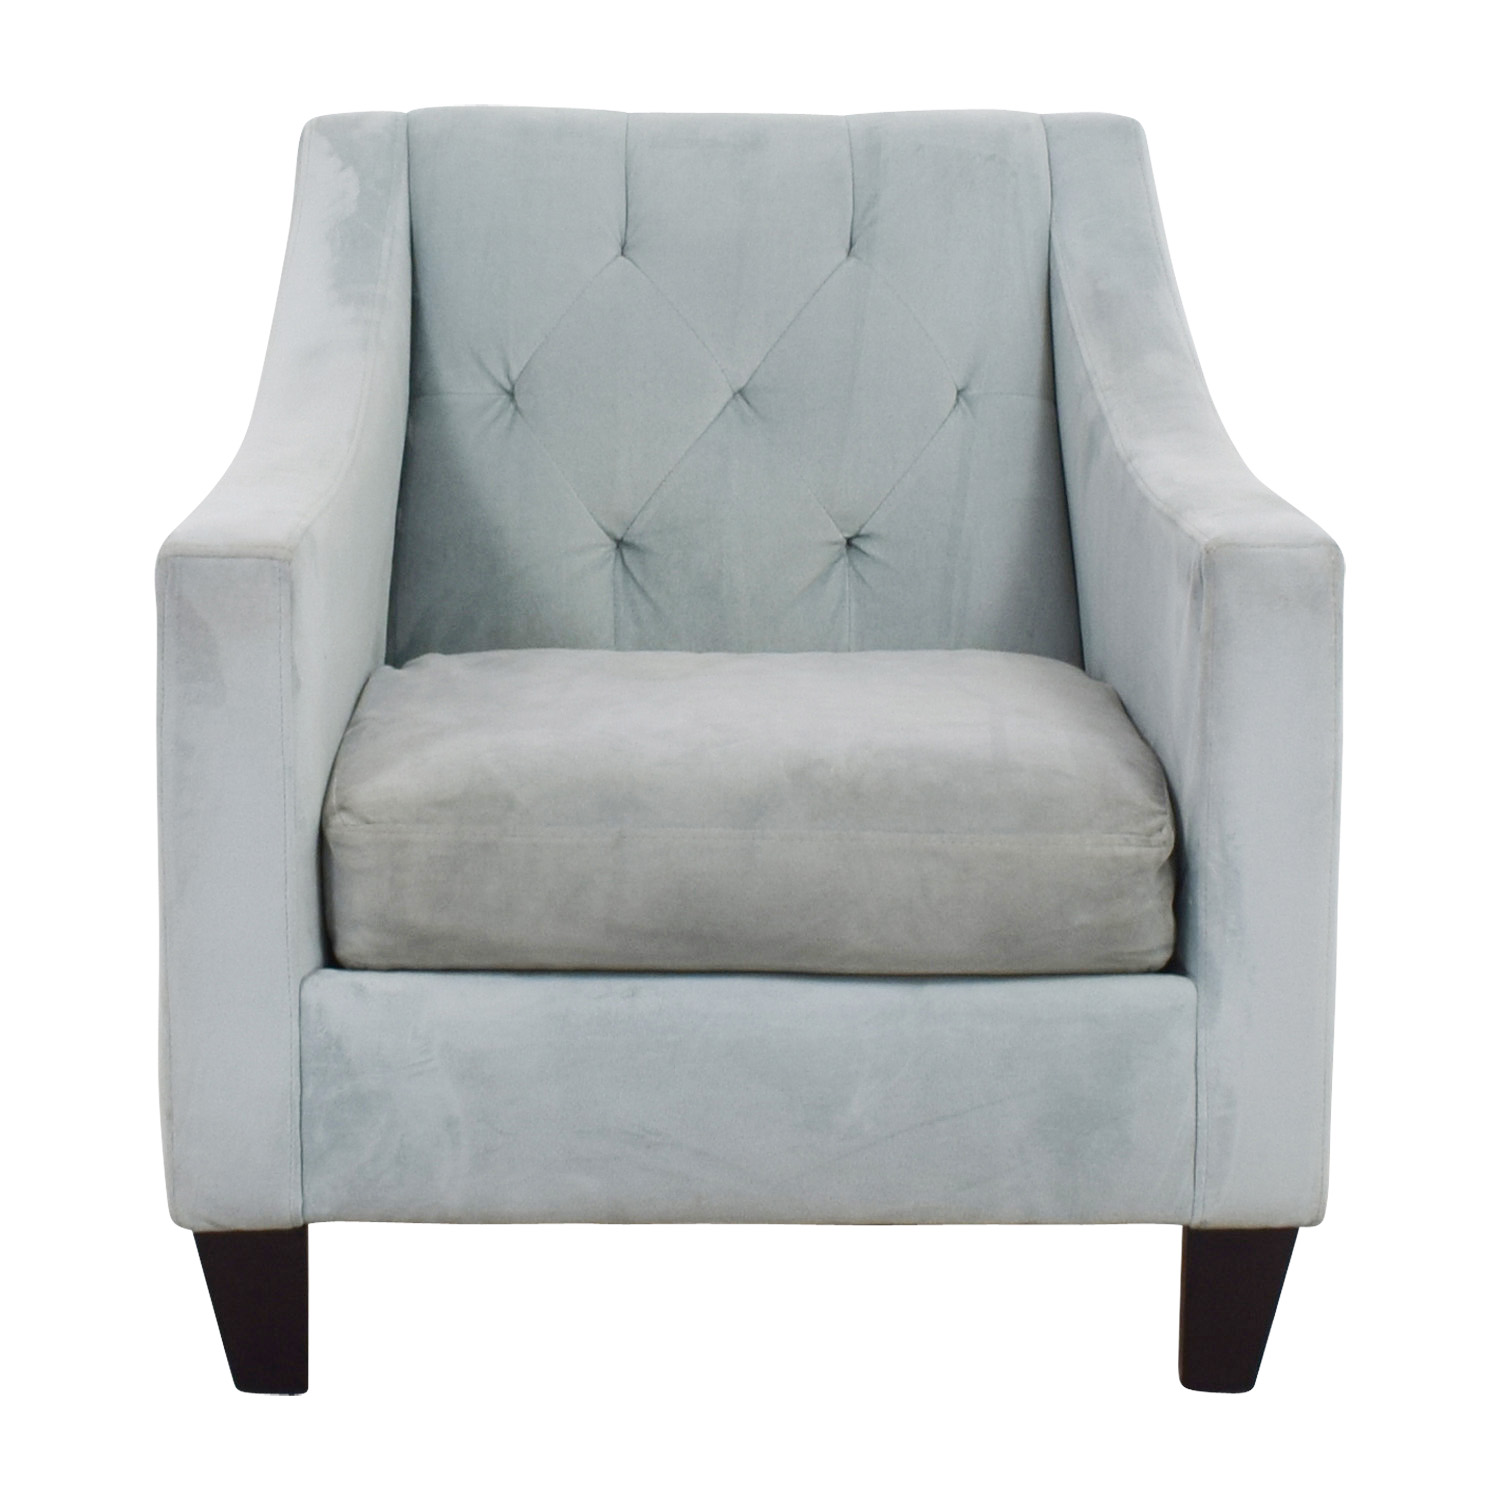 Max Studio Max Studio Blue Tufted Velvet Armchair nyc